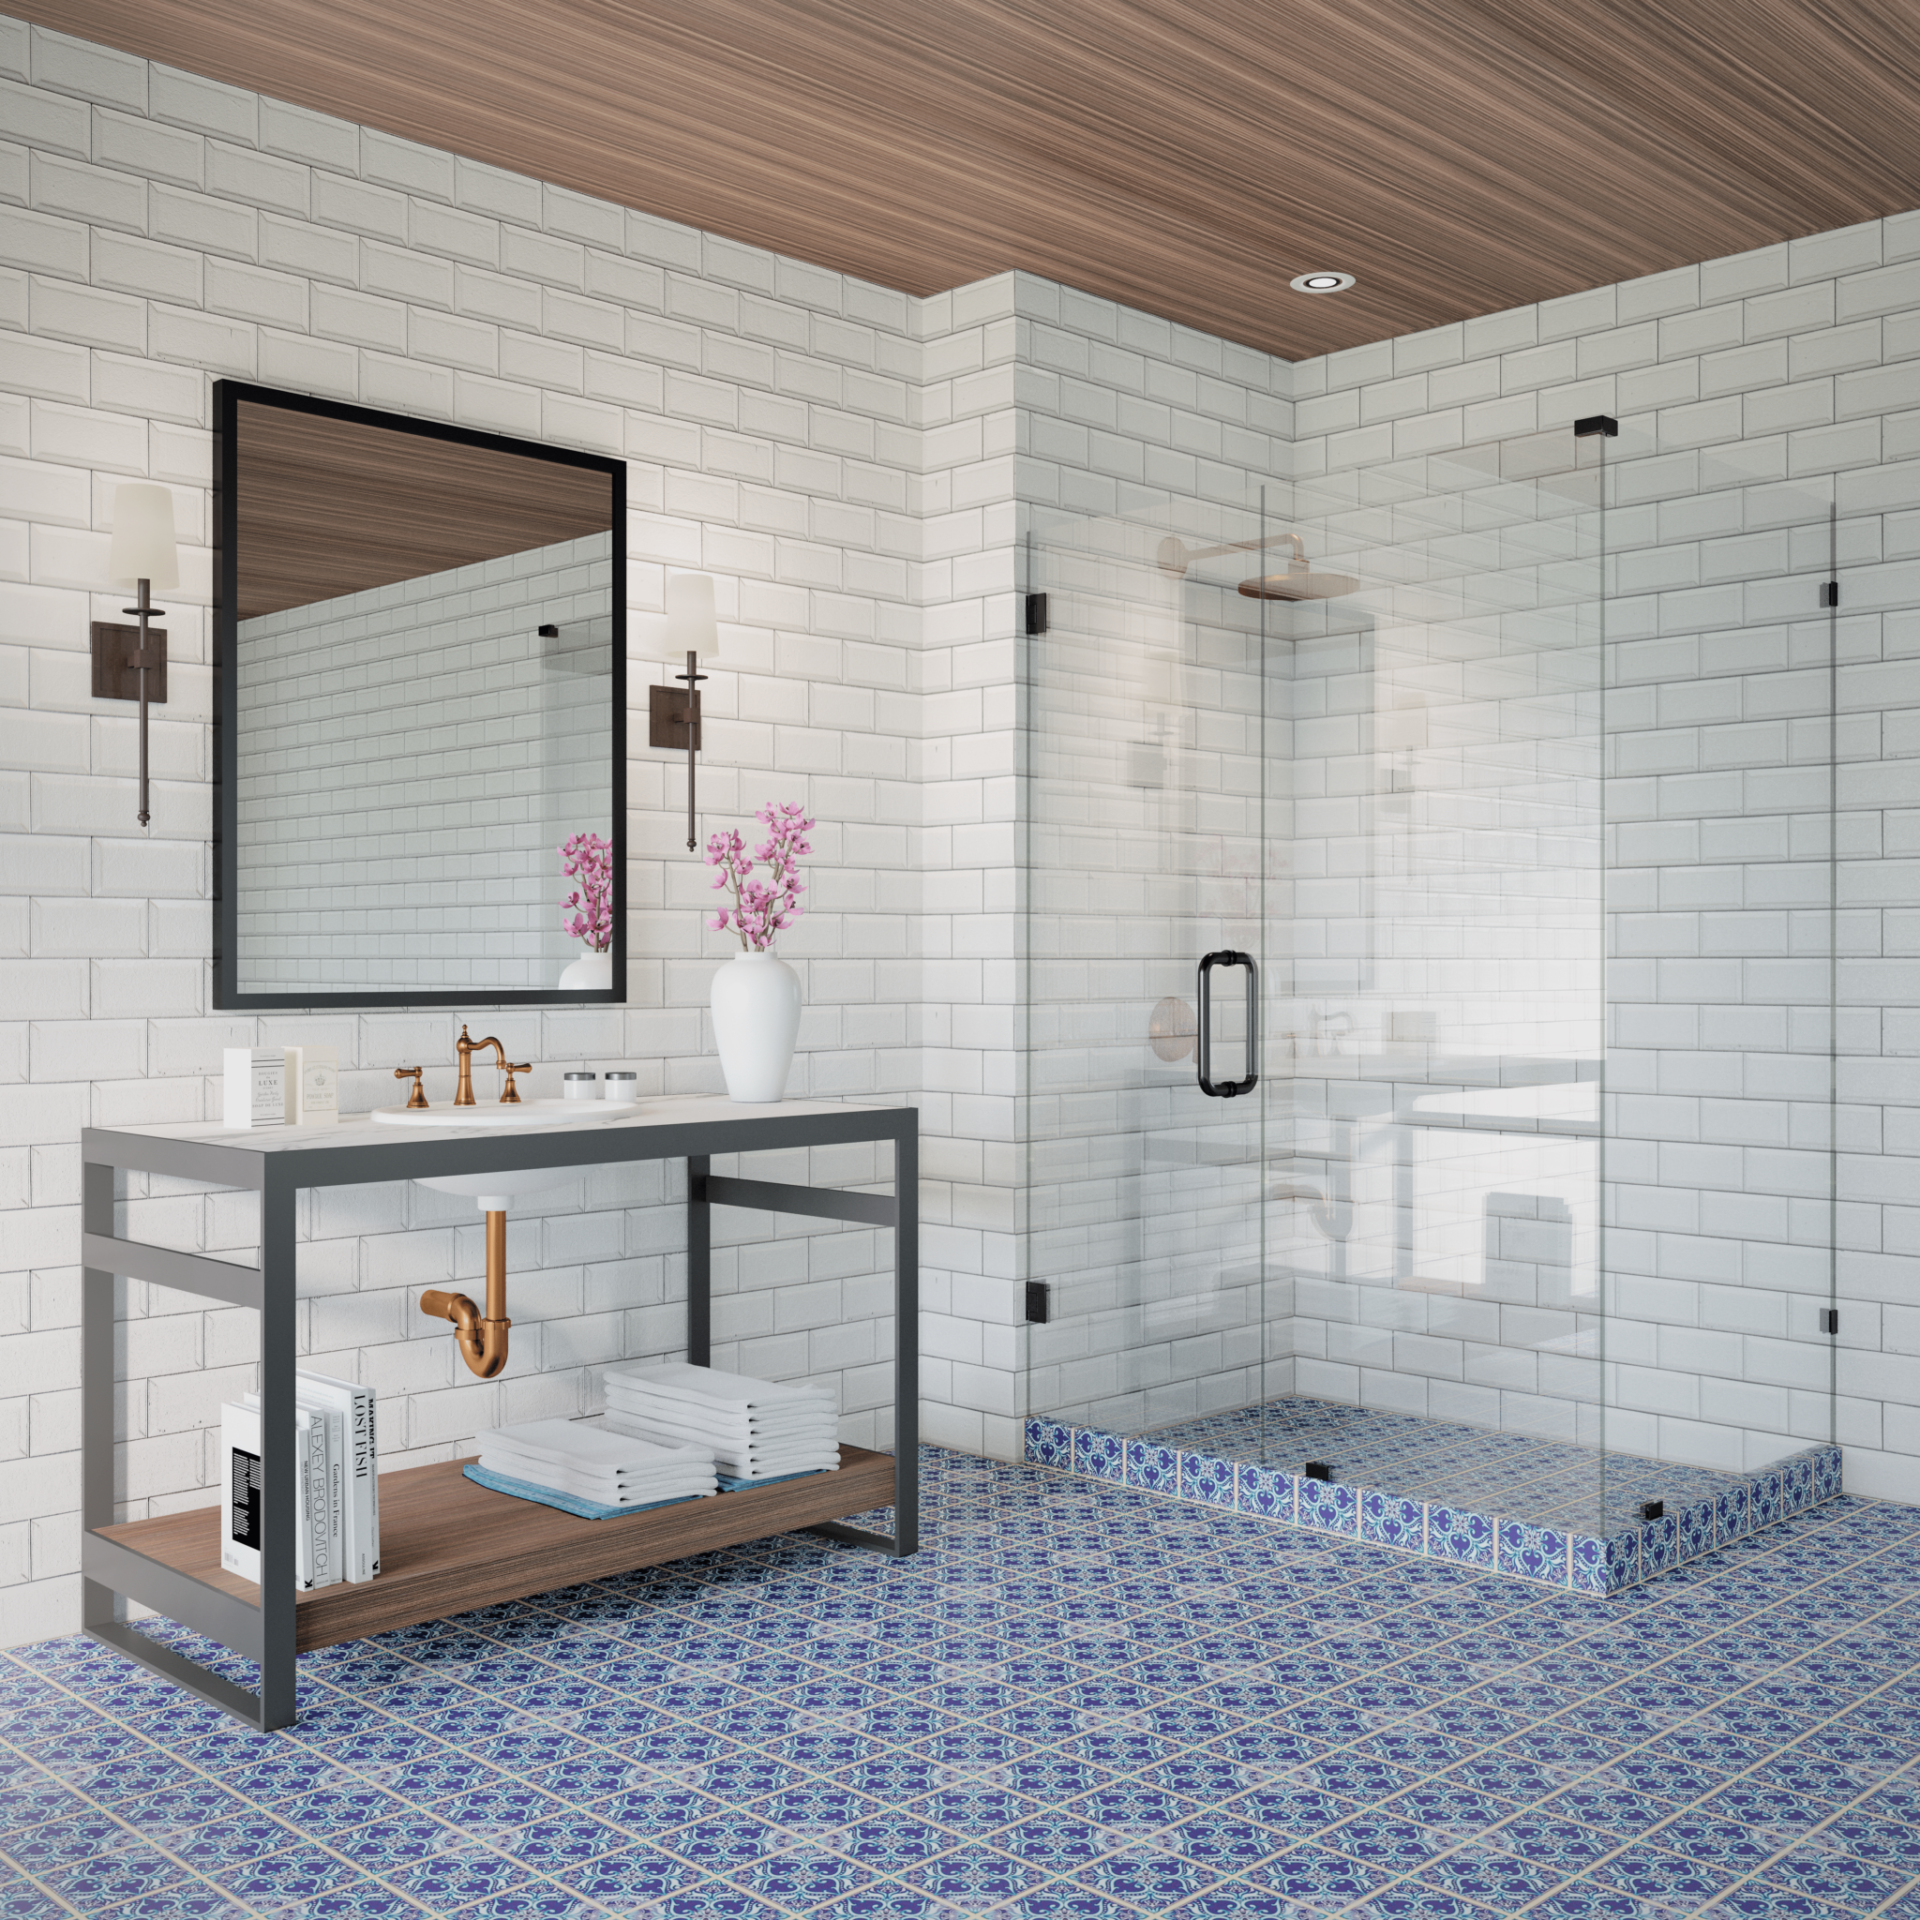 Online Special 90 Degree Frameless Glass Shower 36 64 Wide 76 80 Tall 11 5 36 Return Free Shipping